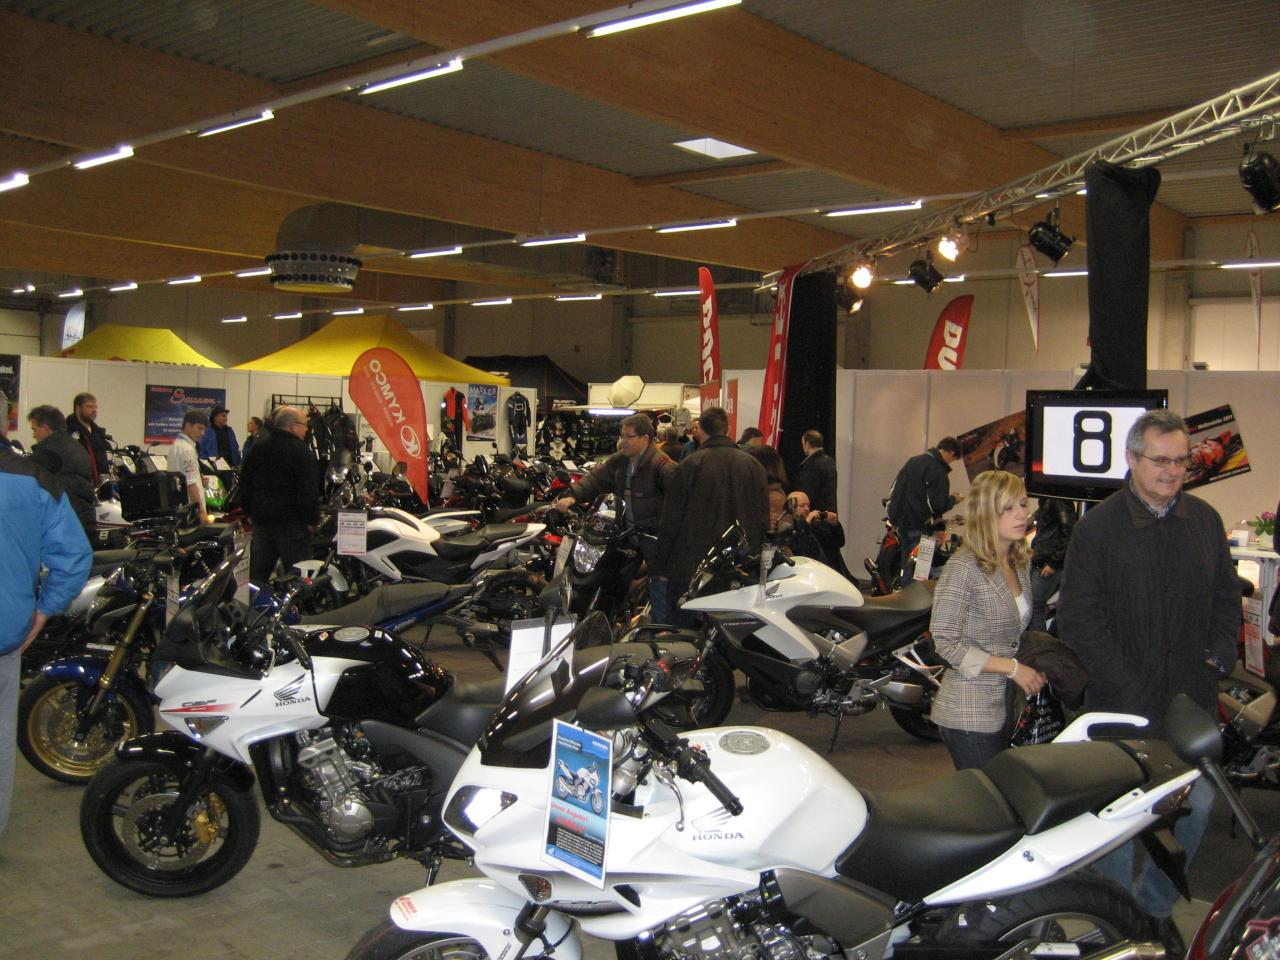 motorrad messe gie en 2012 motorrad fotos motorrad bilder. Black Bedroom Furniture Sets. Home Design Ideas